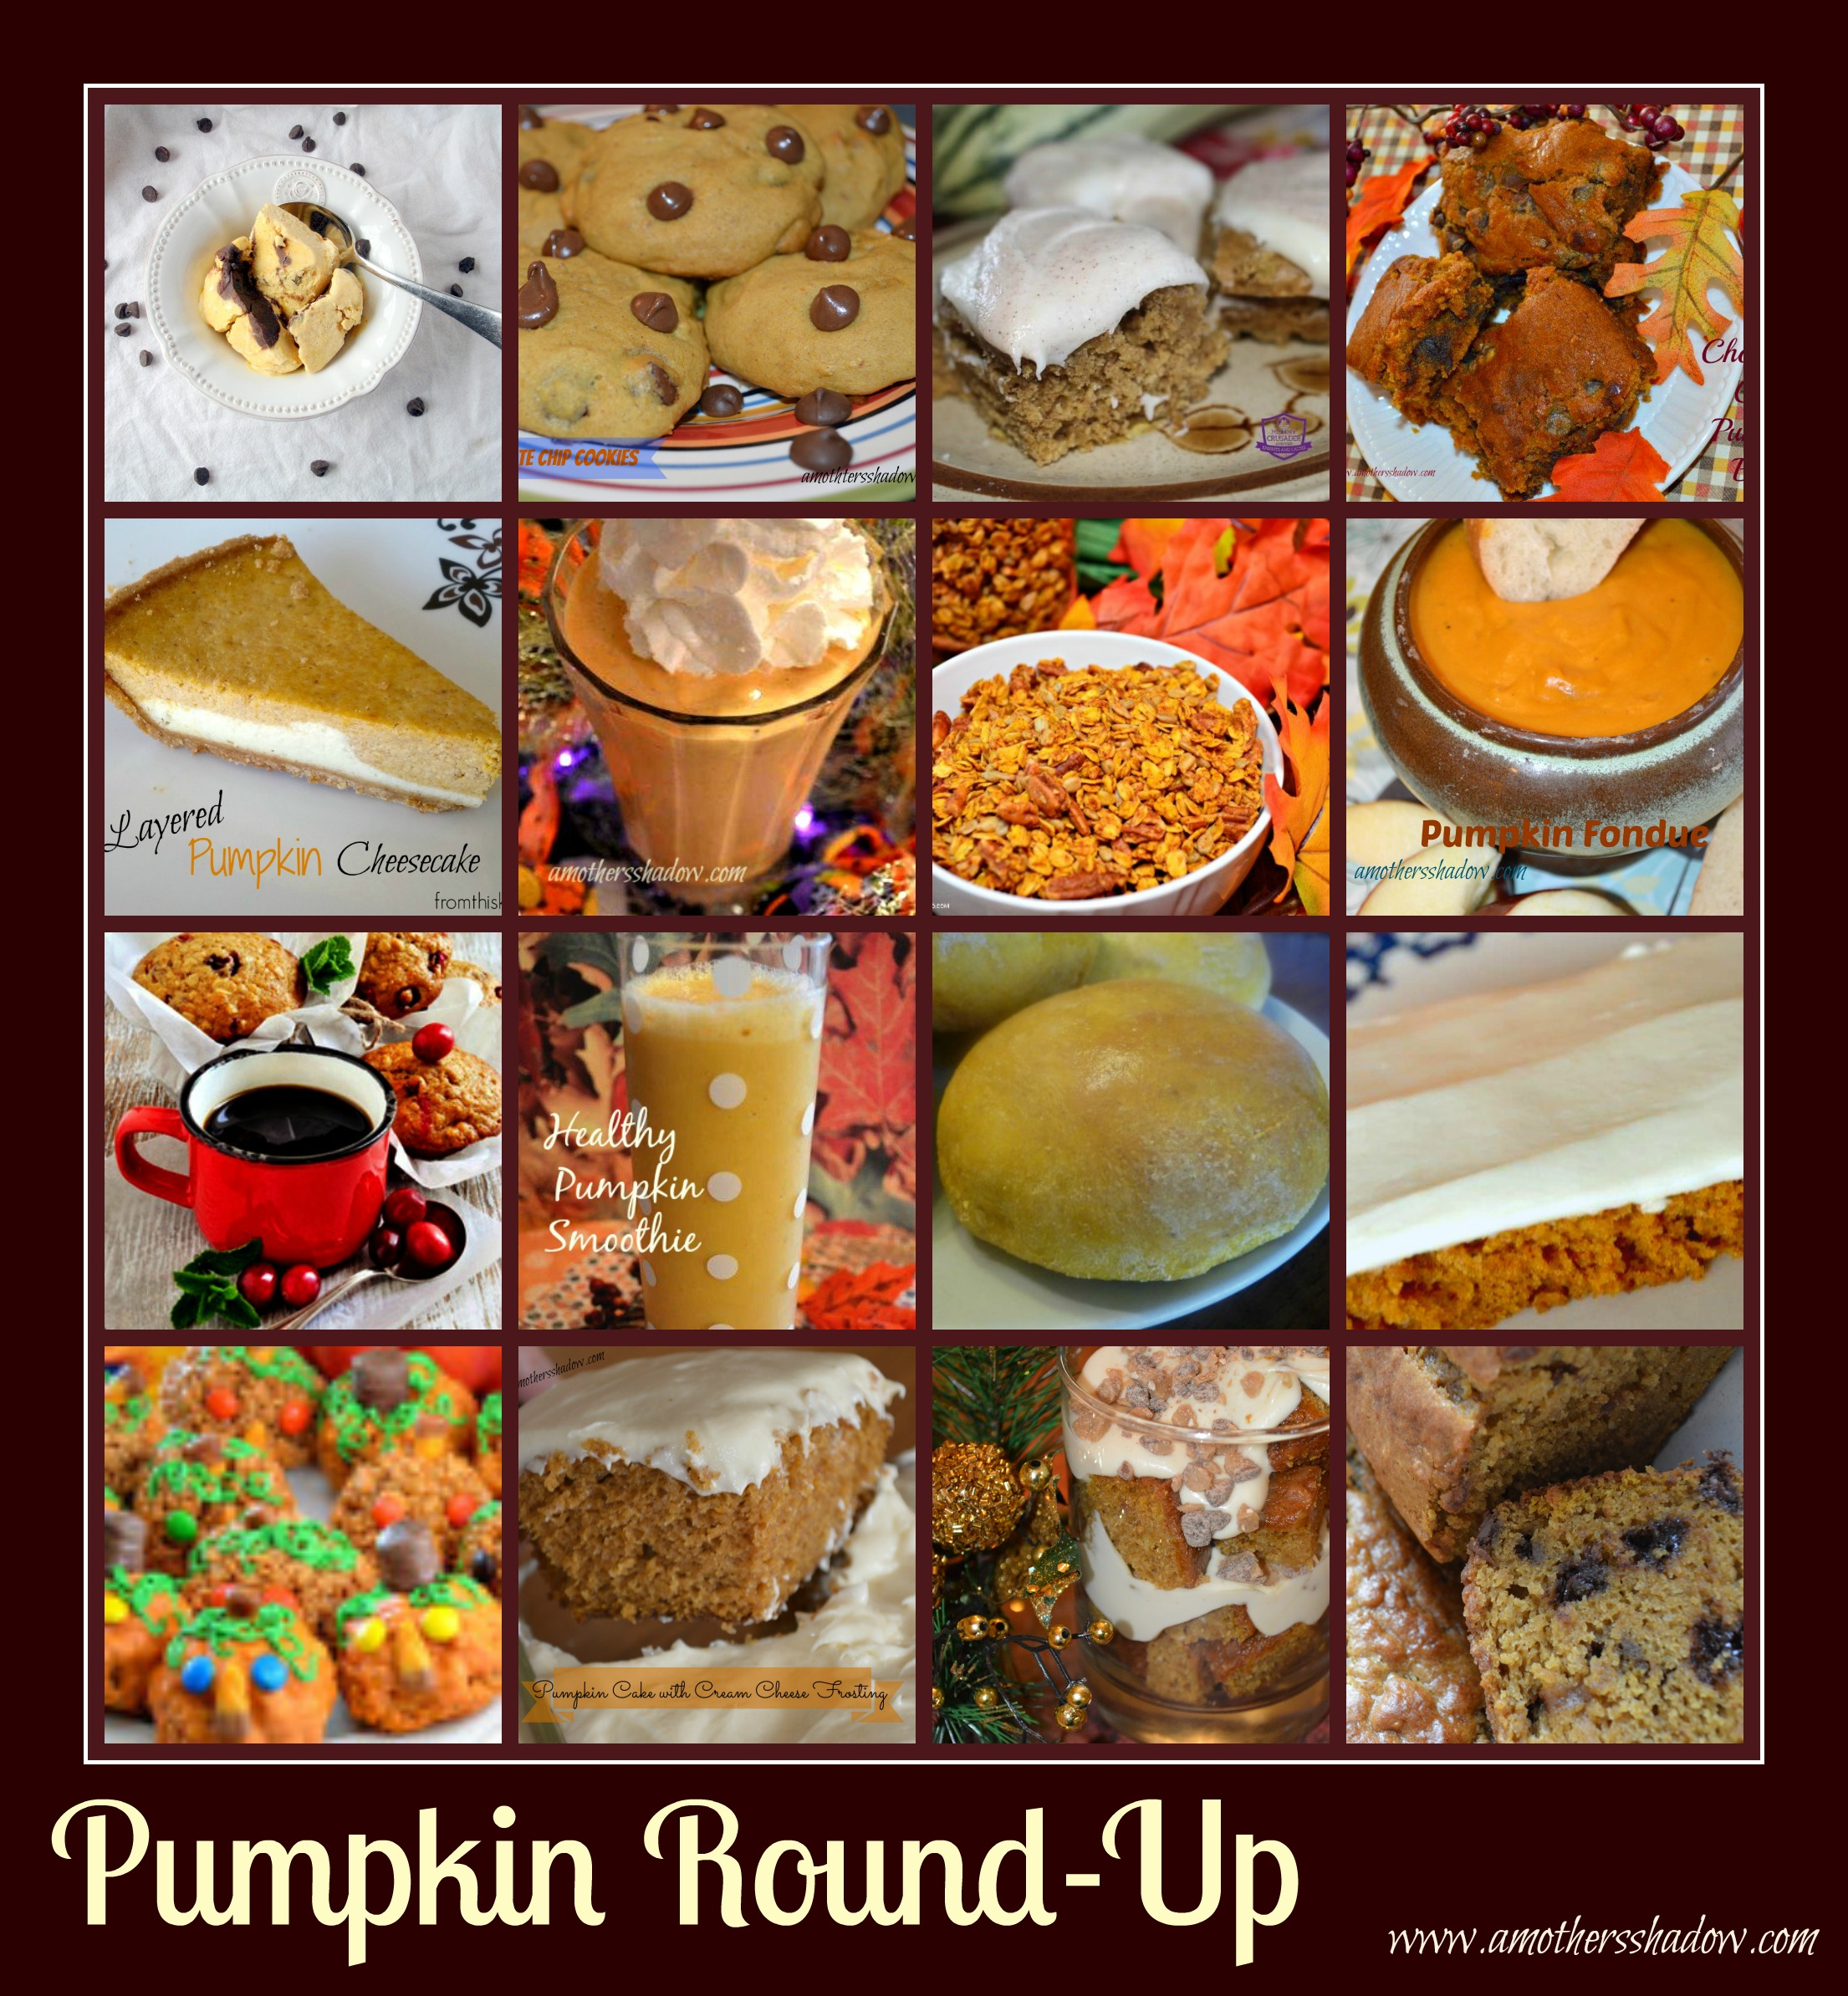 Pumpkin Round-Up